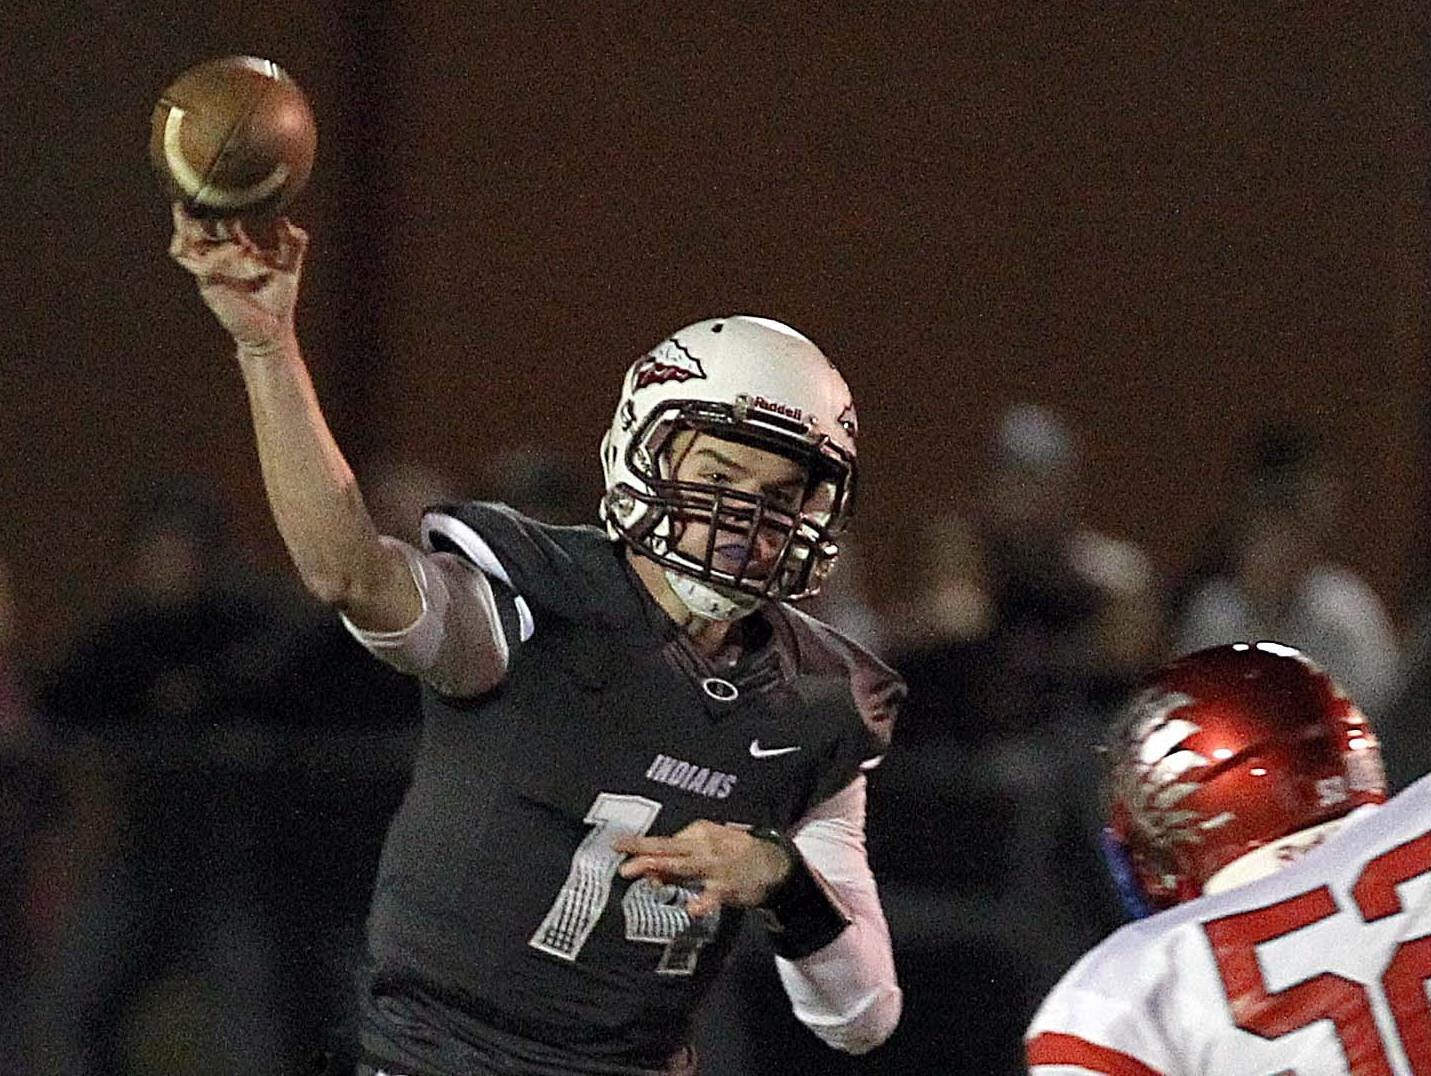 Strafford quarterback Chanler Collins is 23-of-40 passing for 254 yards and a touchdown in two games this season.